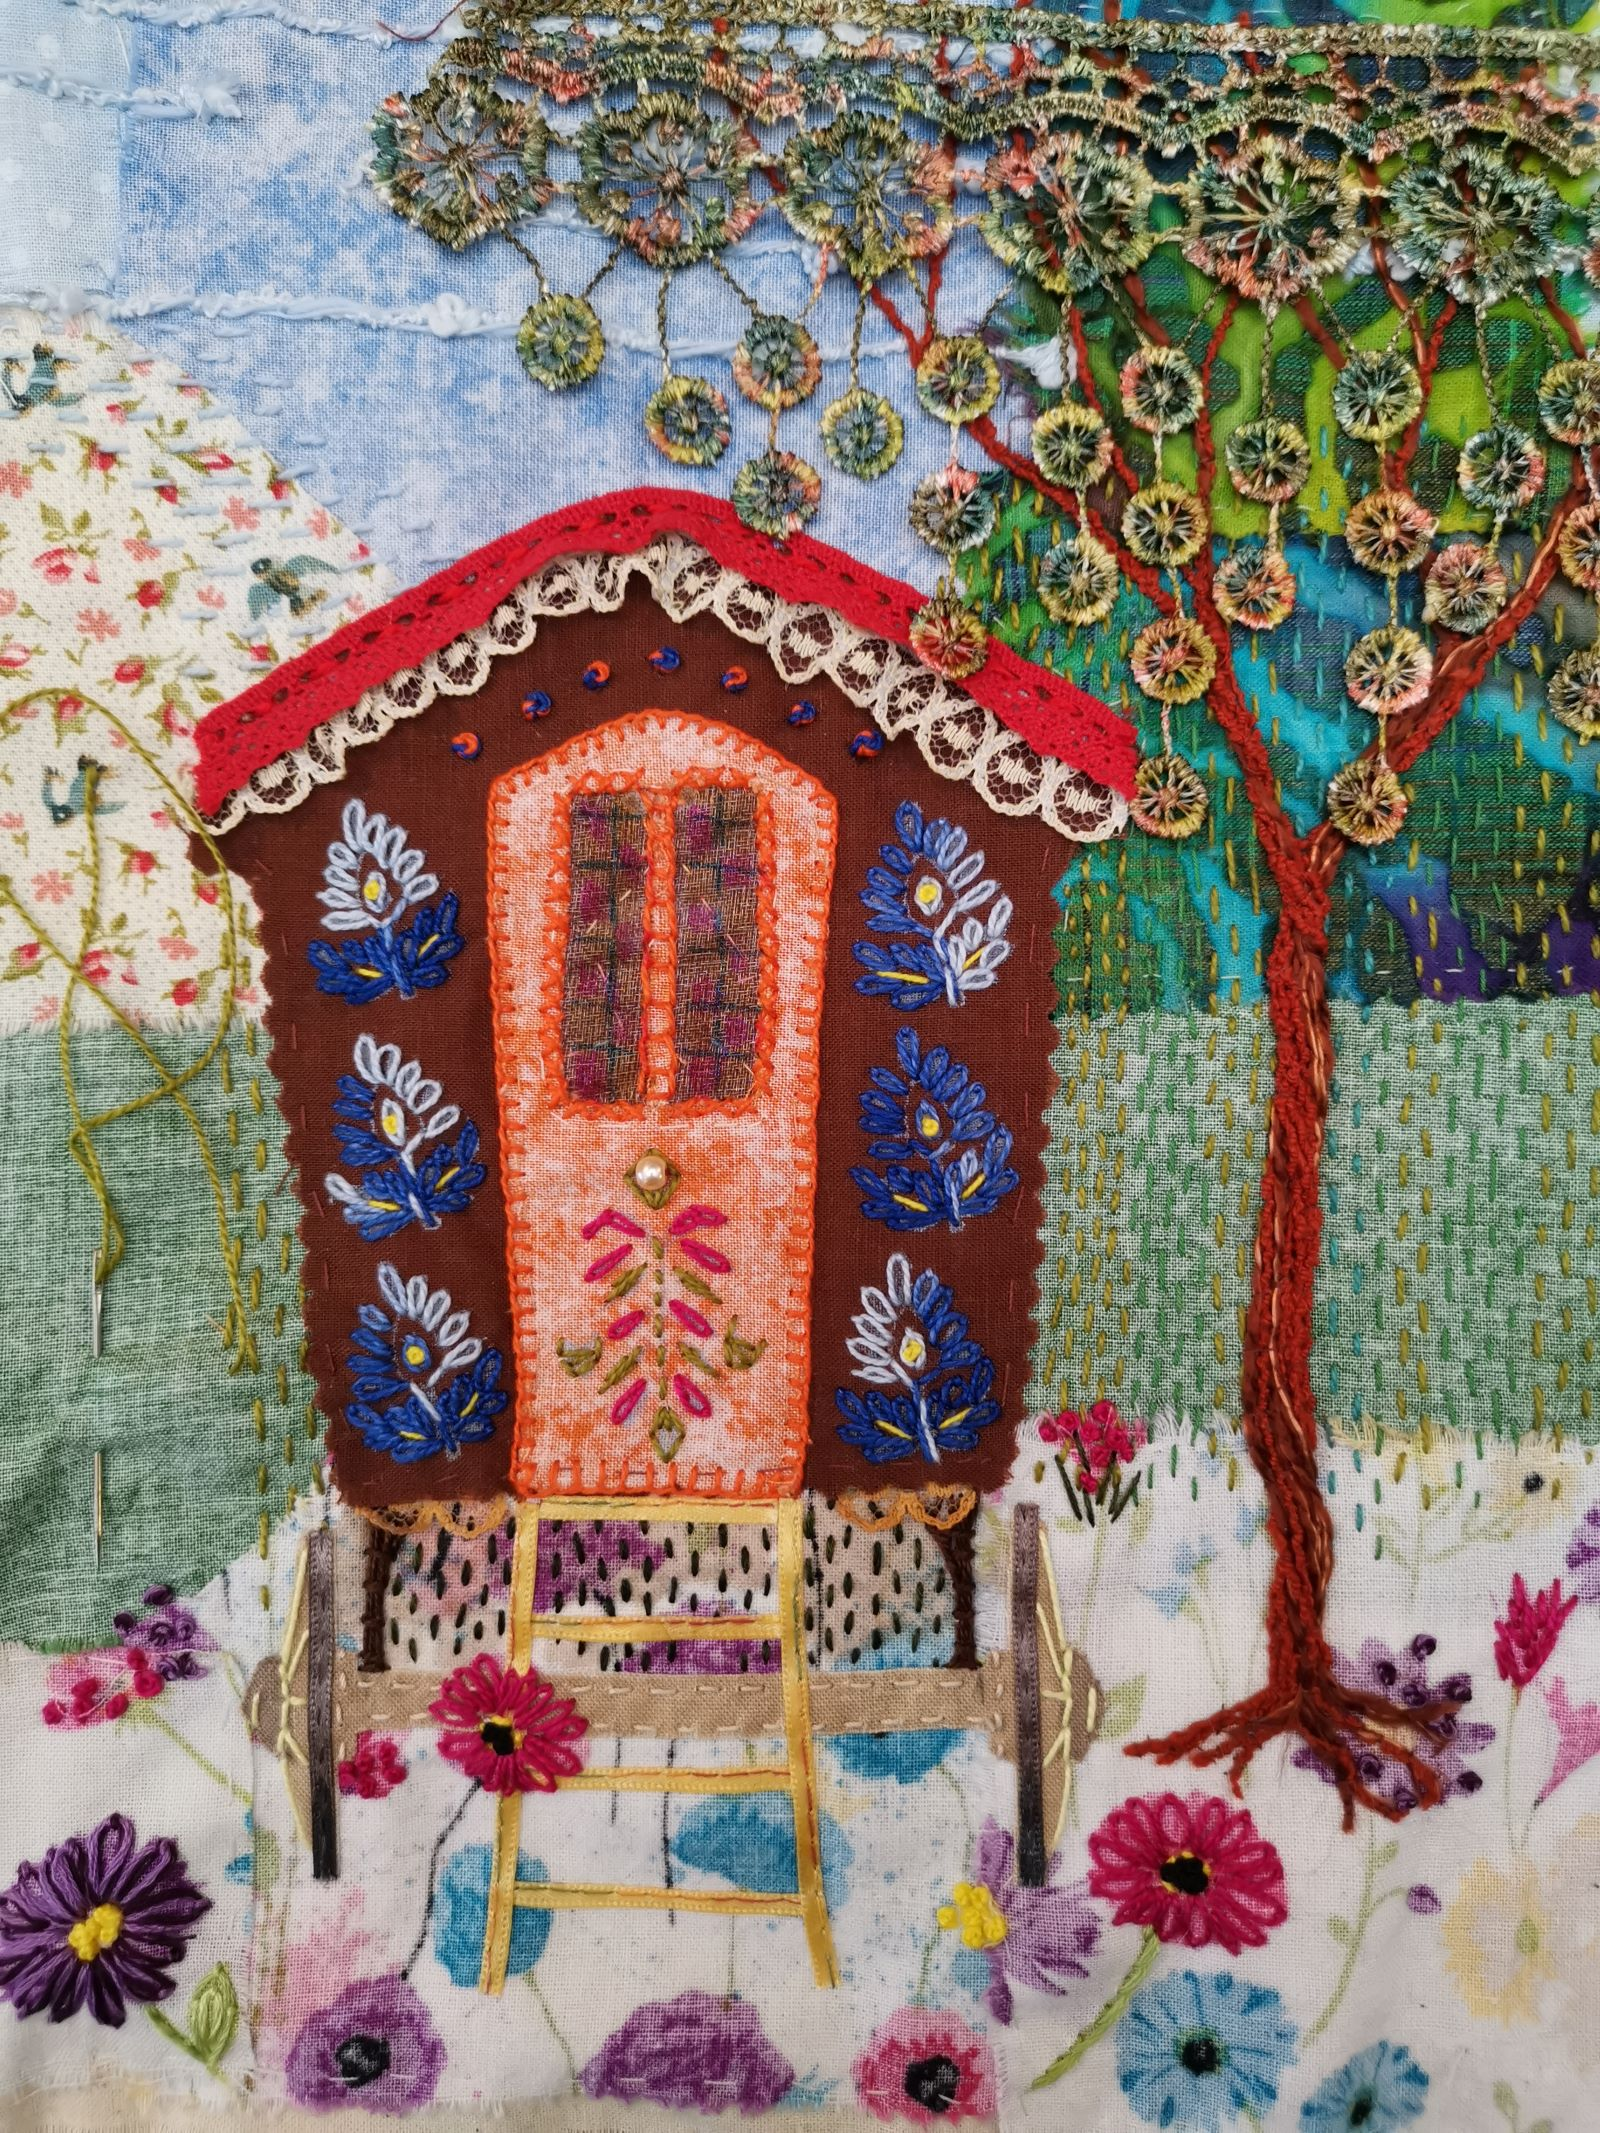 House and Home Textile Art Course